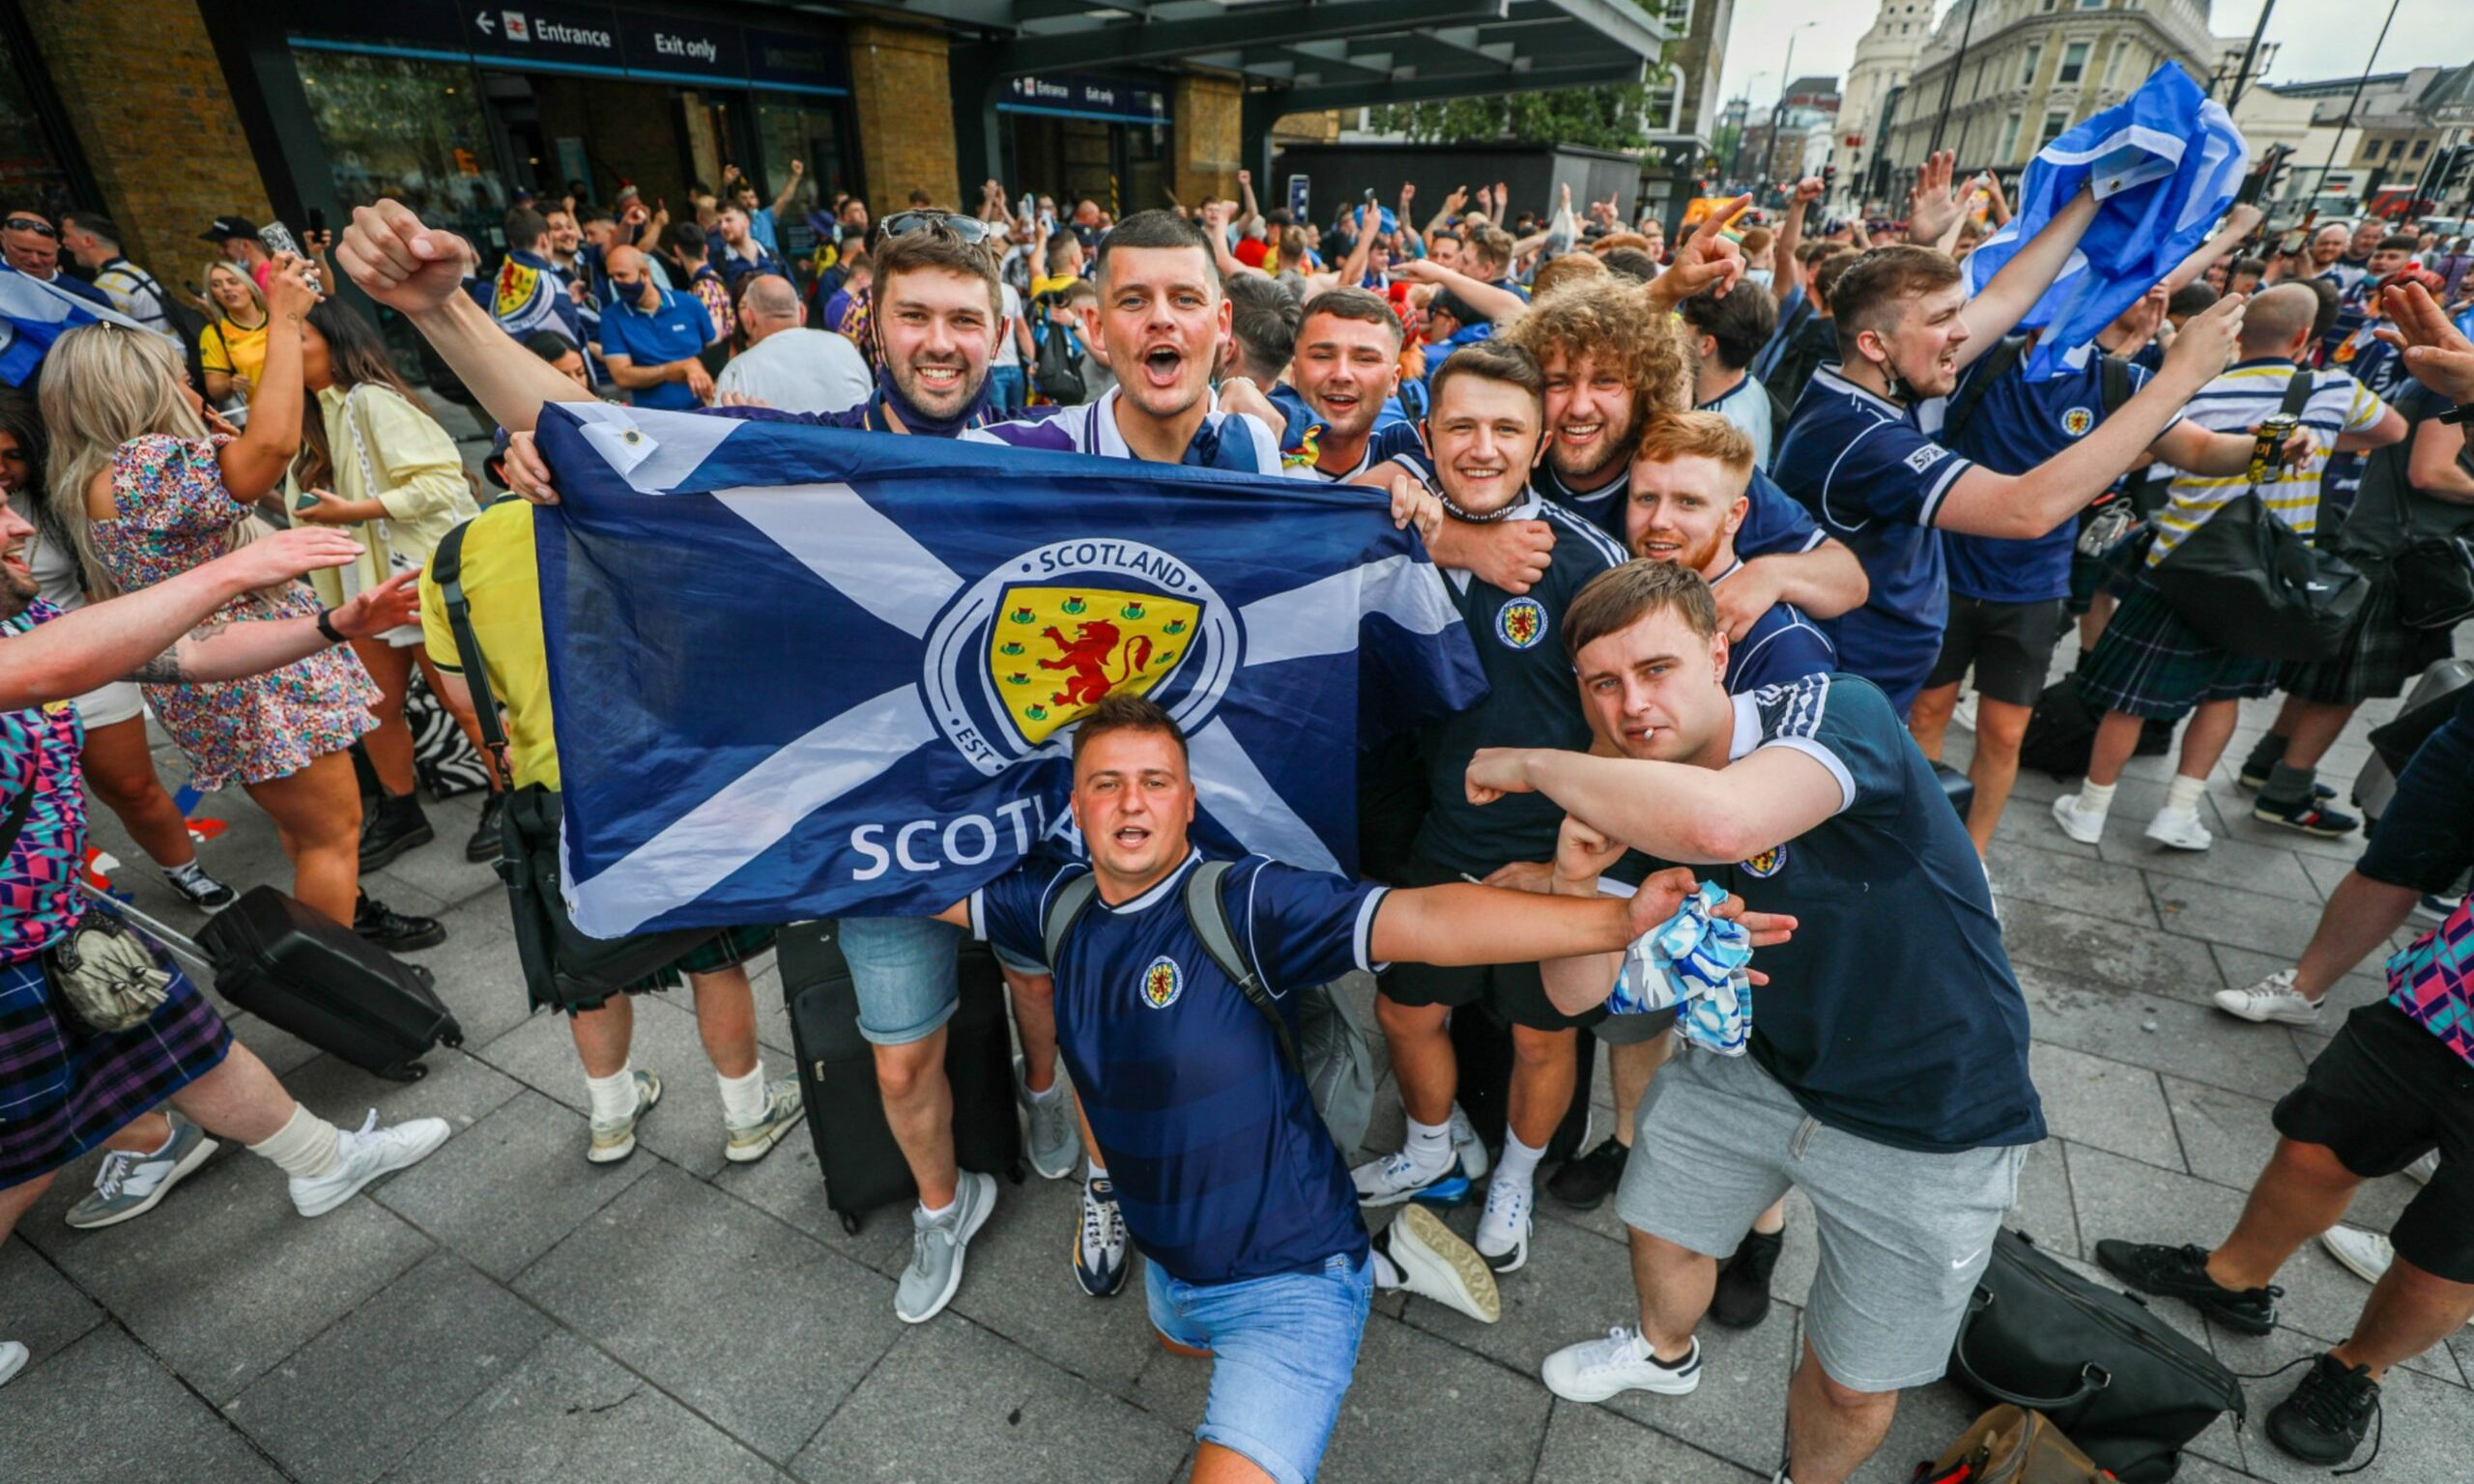 Scotland fans watching Euro 2020 'causing Covid spike in Tayside'